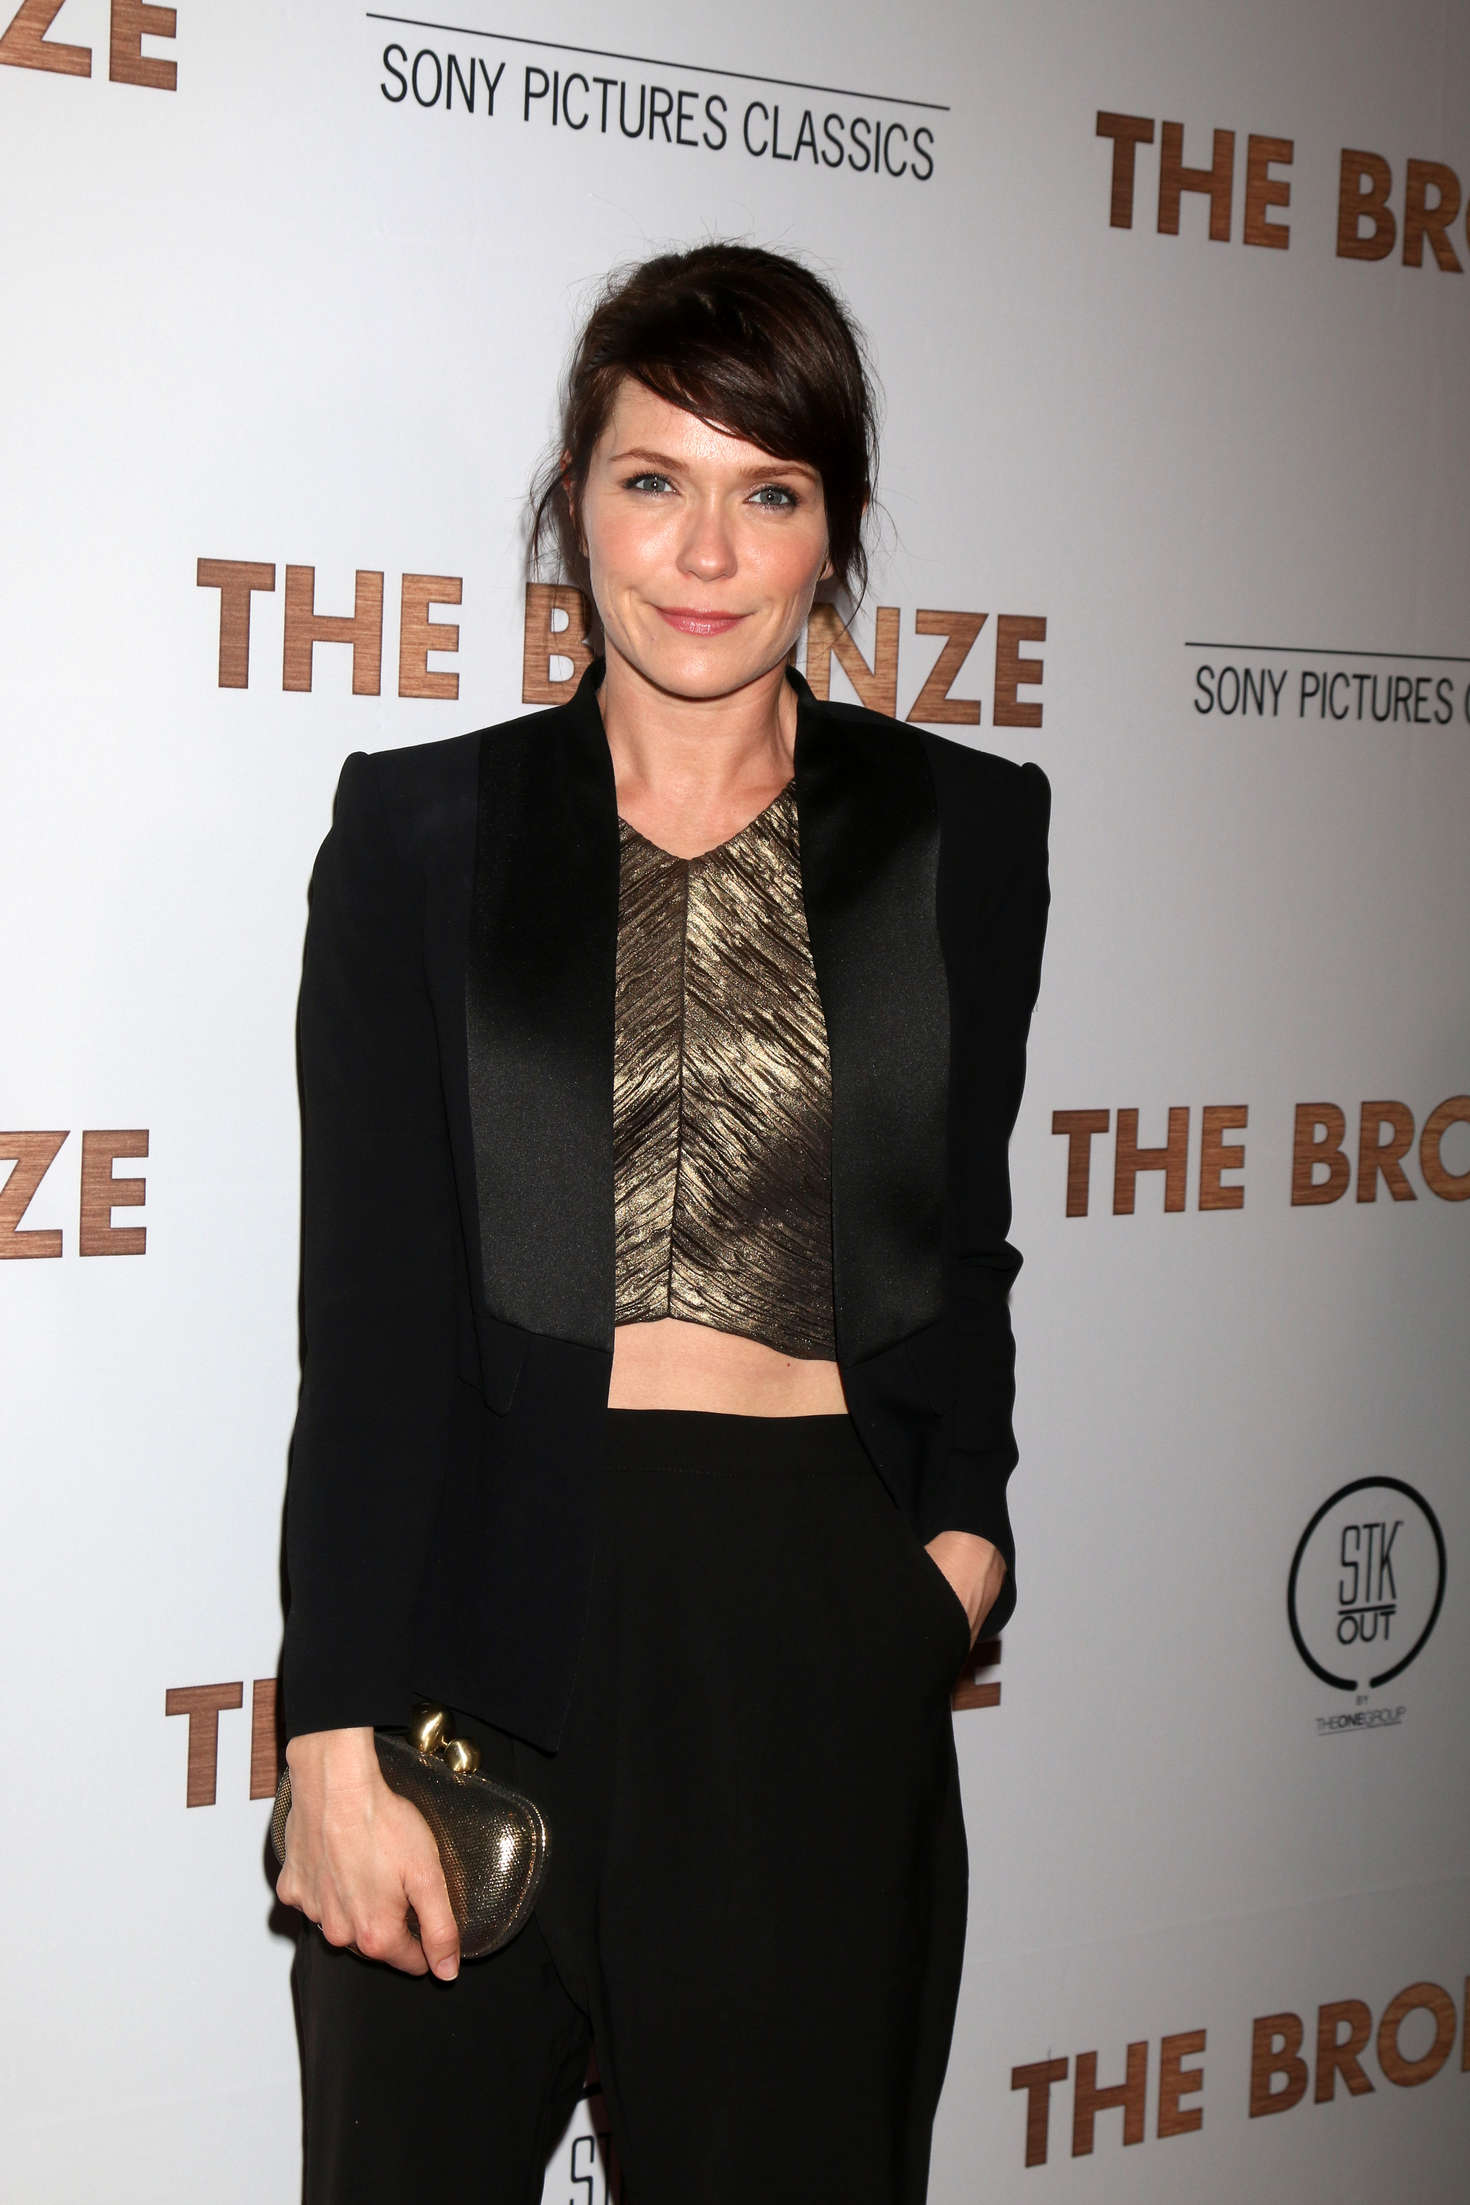 Katie Aselton The Bronze Premiere in Los Angeles